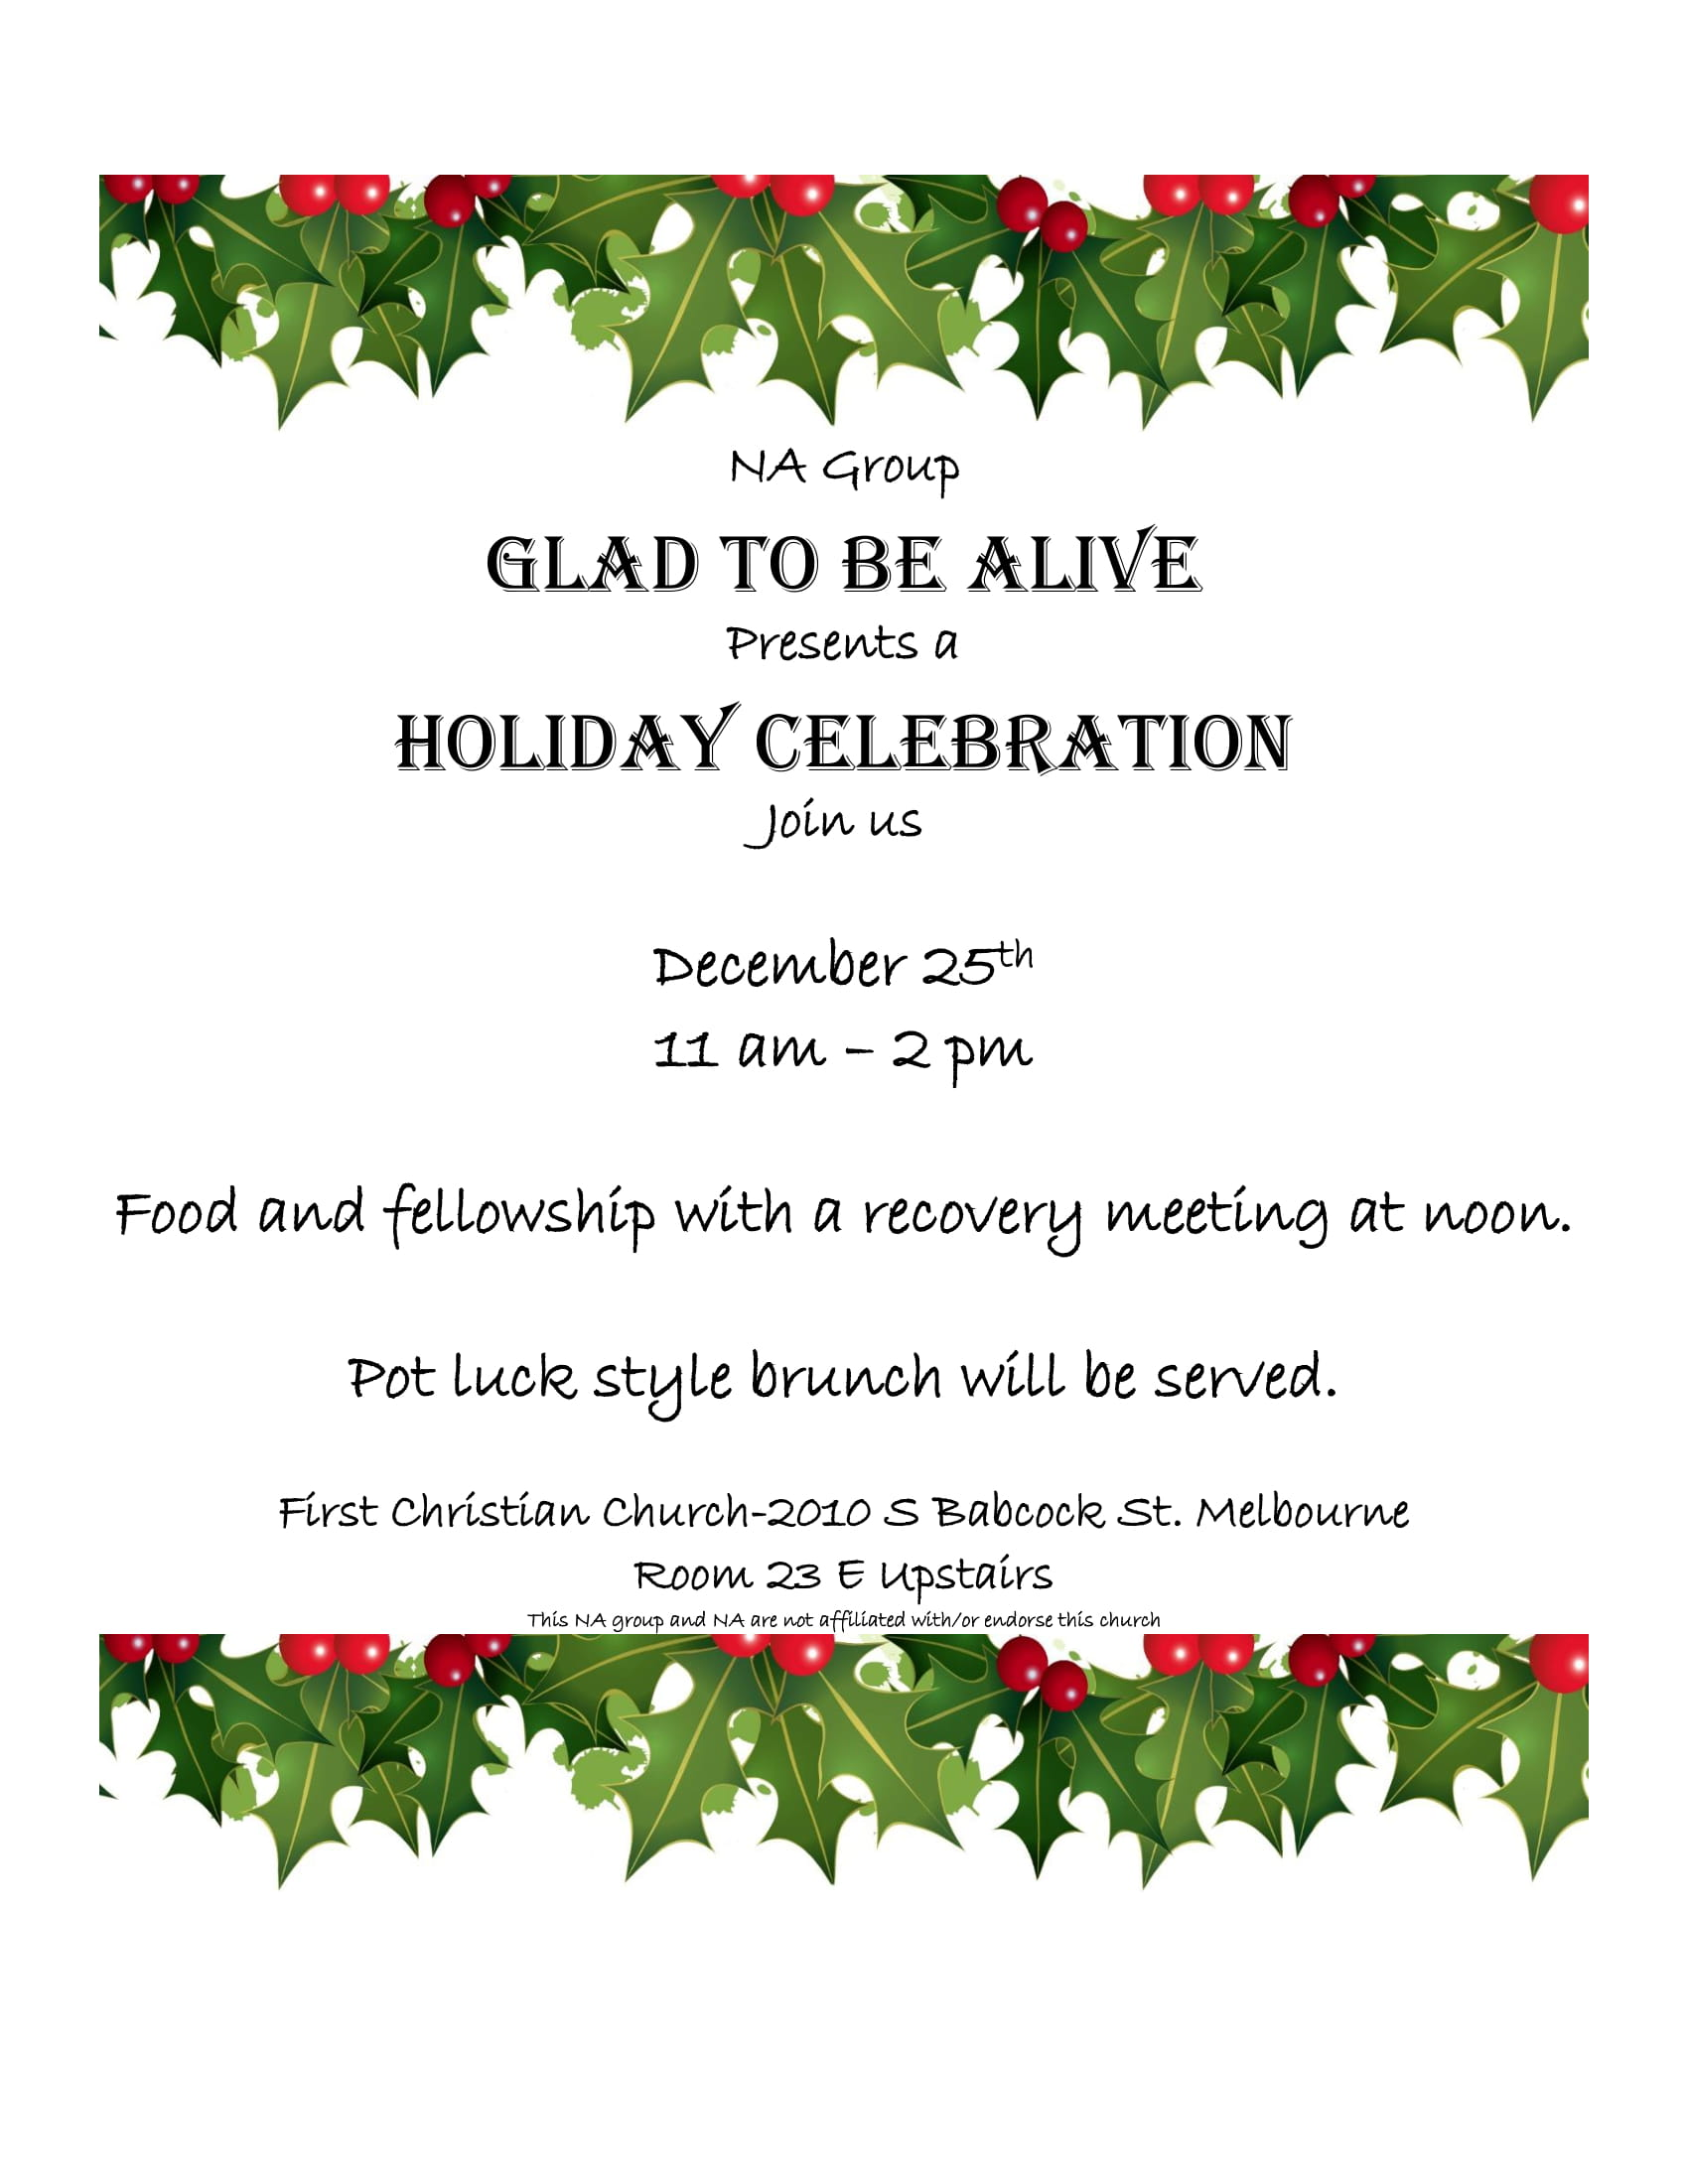 Glad To Be Alive Presents A Holiday Celebration @ First Christian Church